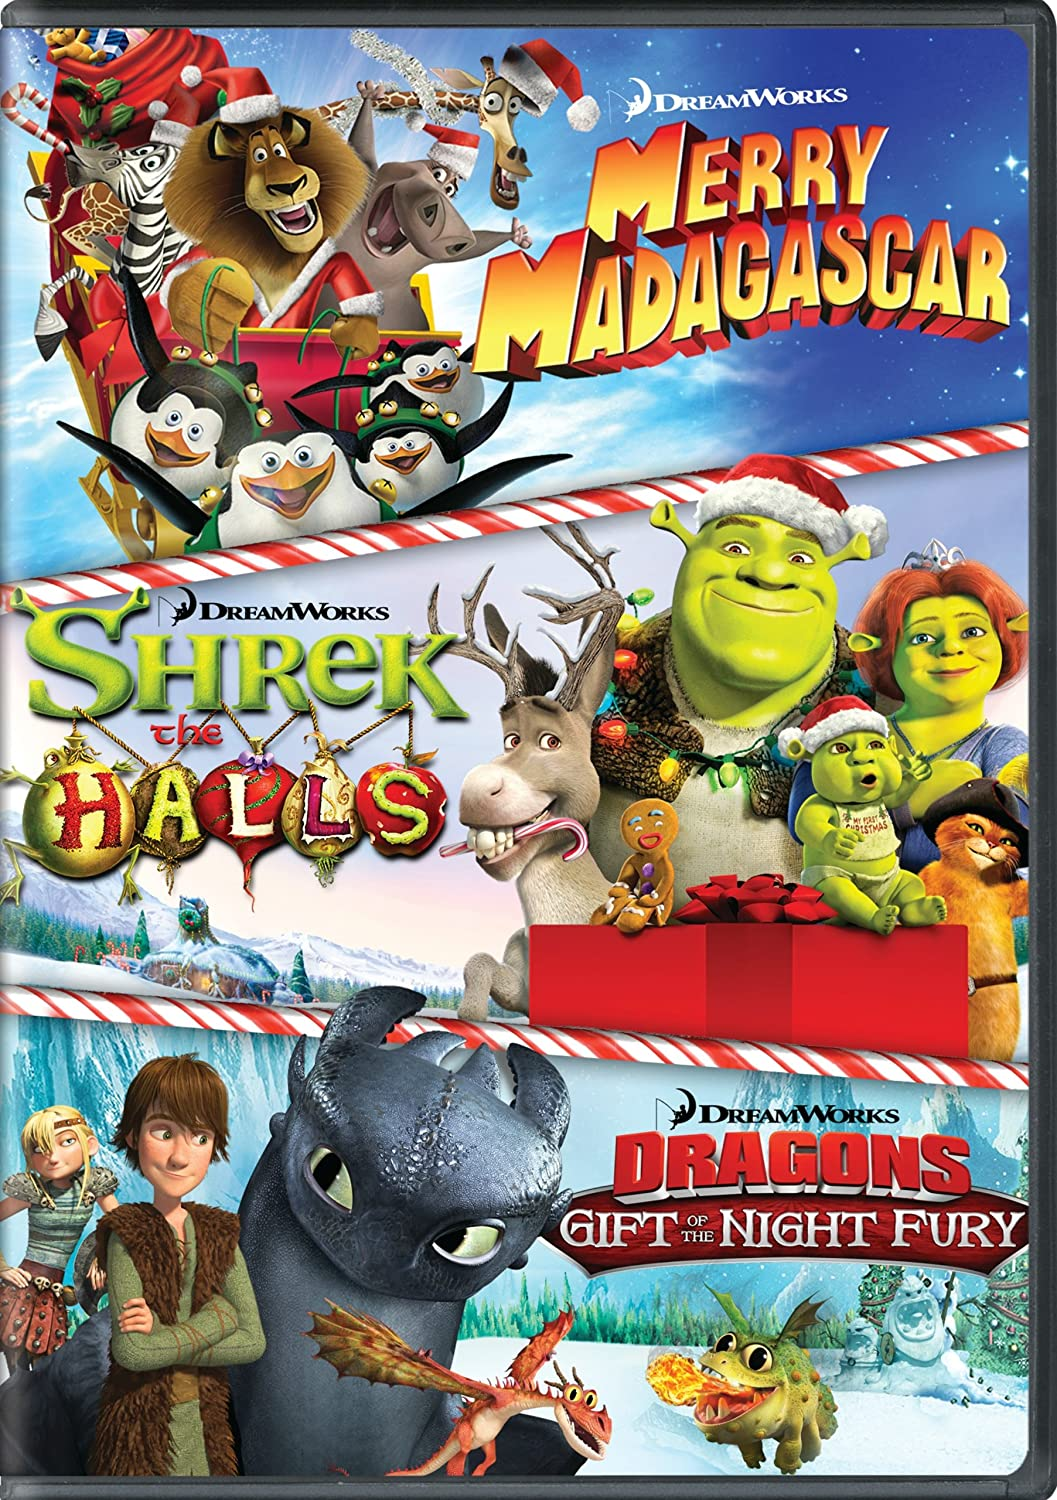 Amazon.com: Dreamworks Holiday Classics (Merry Madagascar / Shrek ...